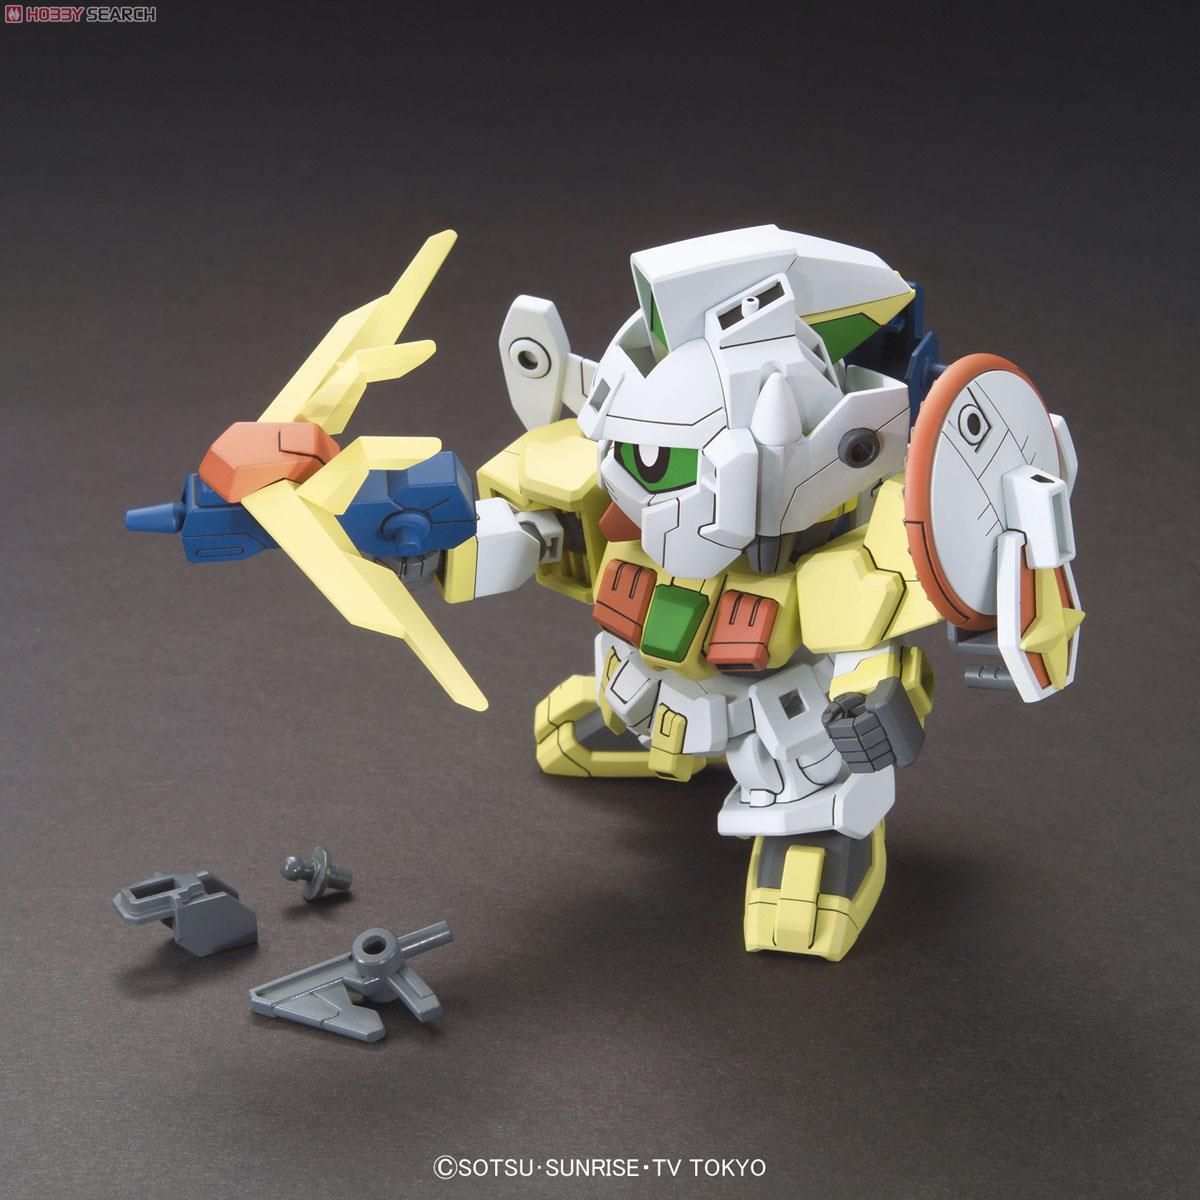 Winning Gundam (SDBF) (Gundam Model Kits) Item picture5